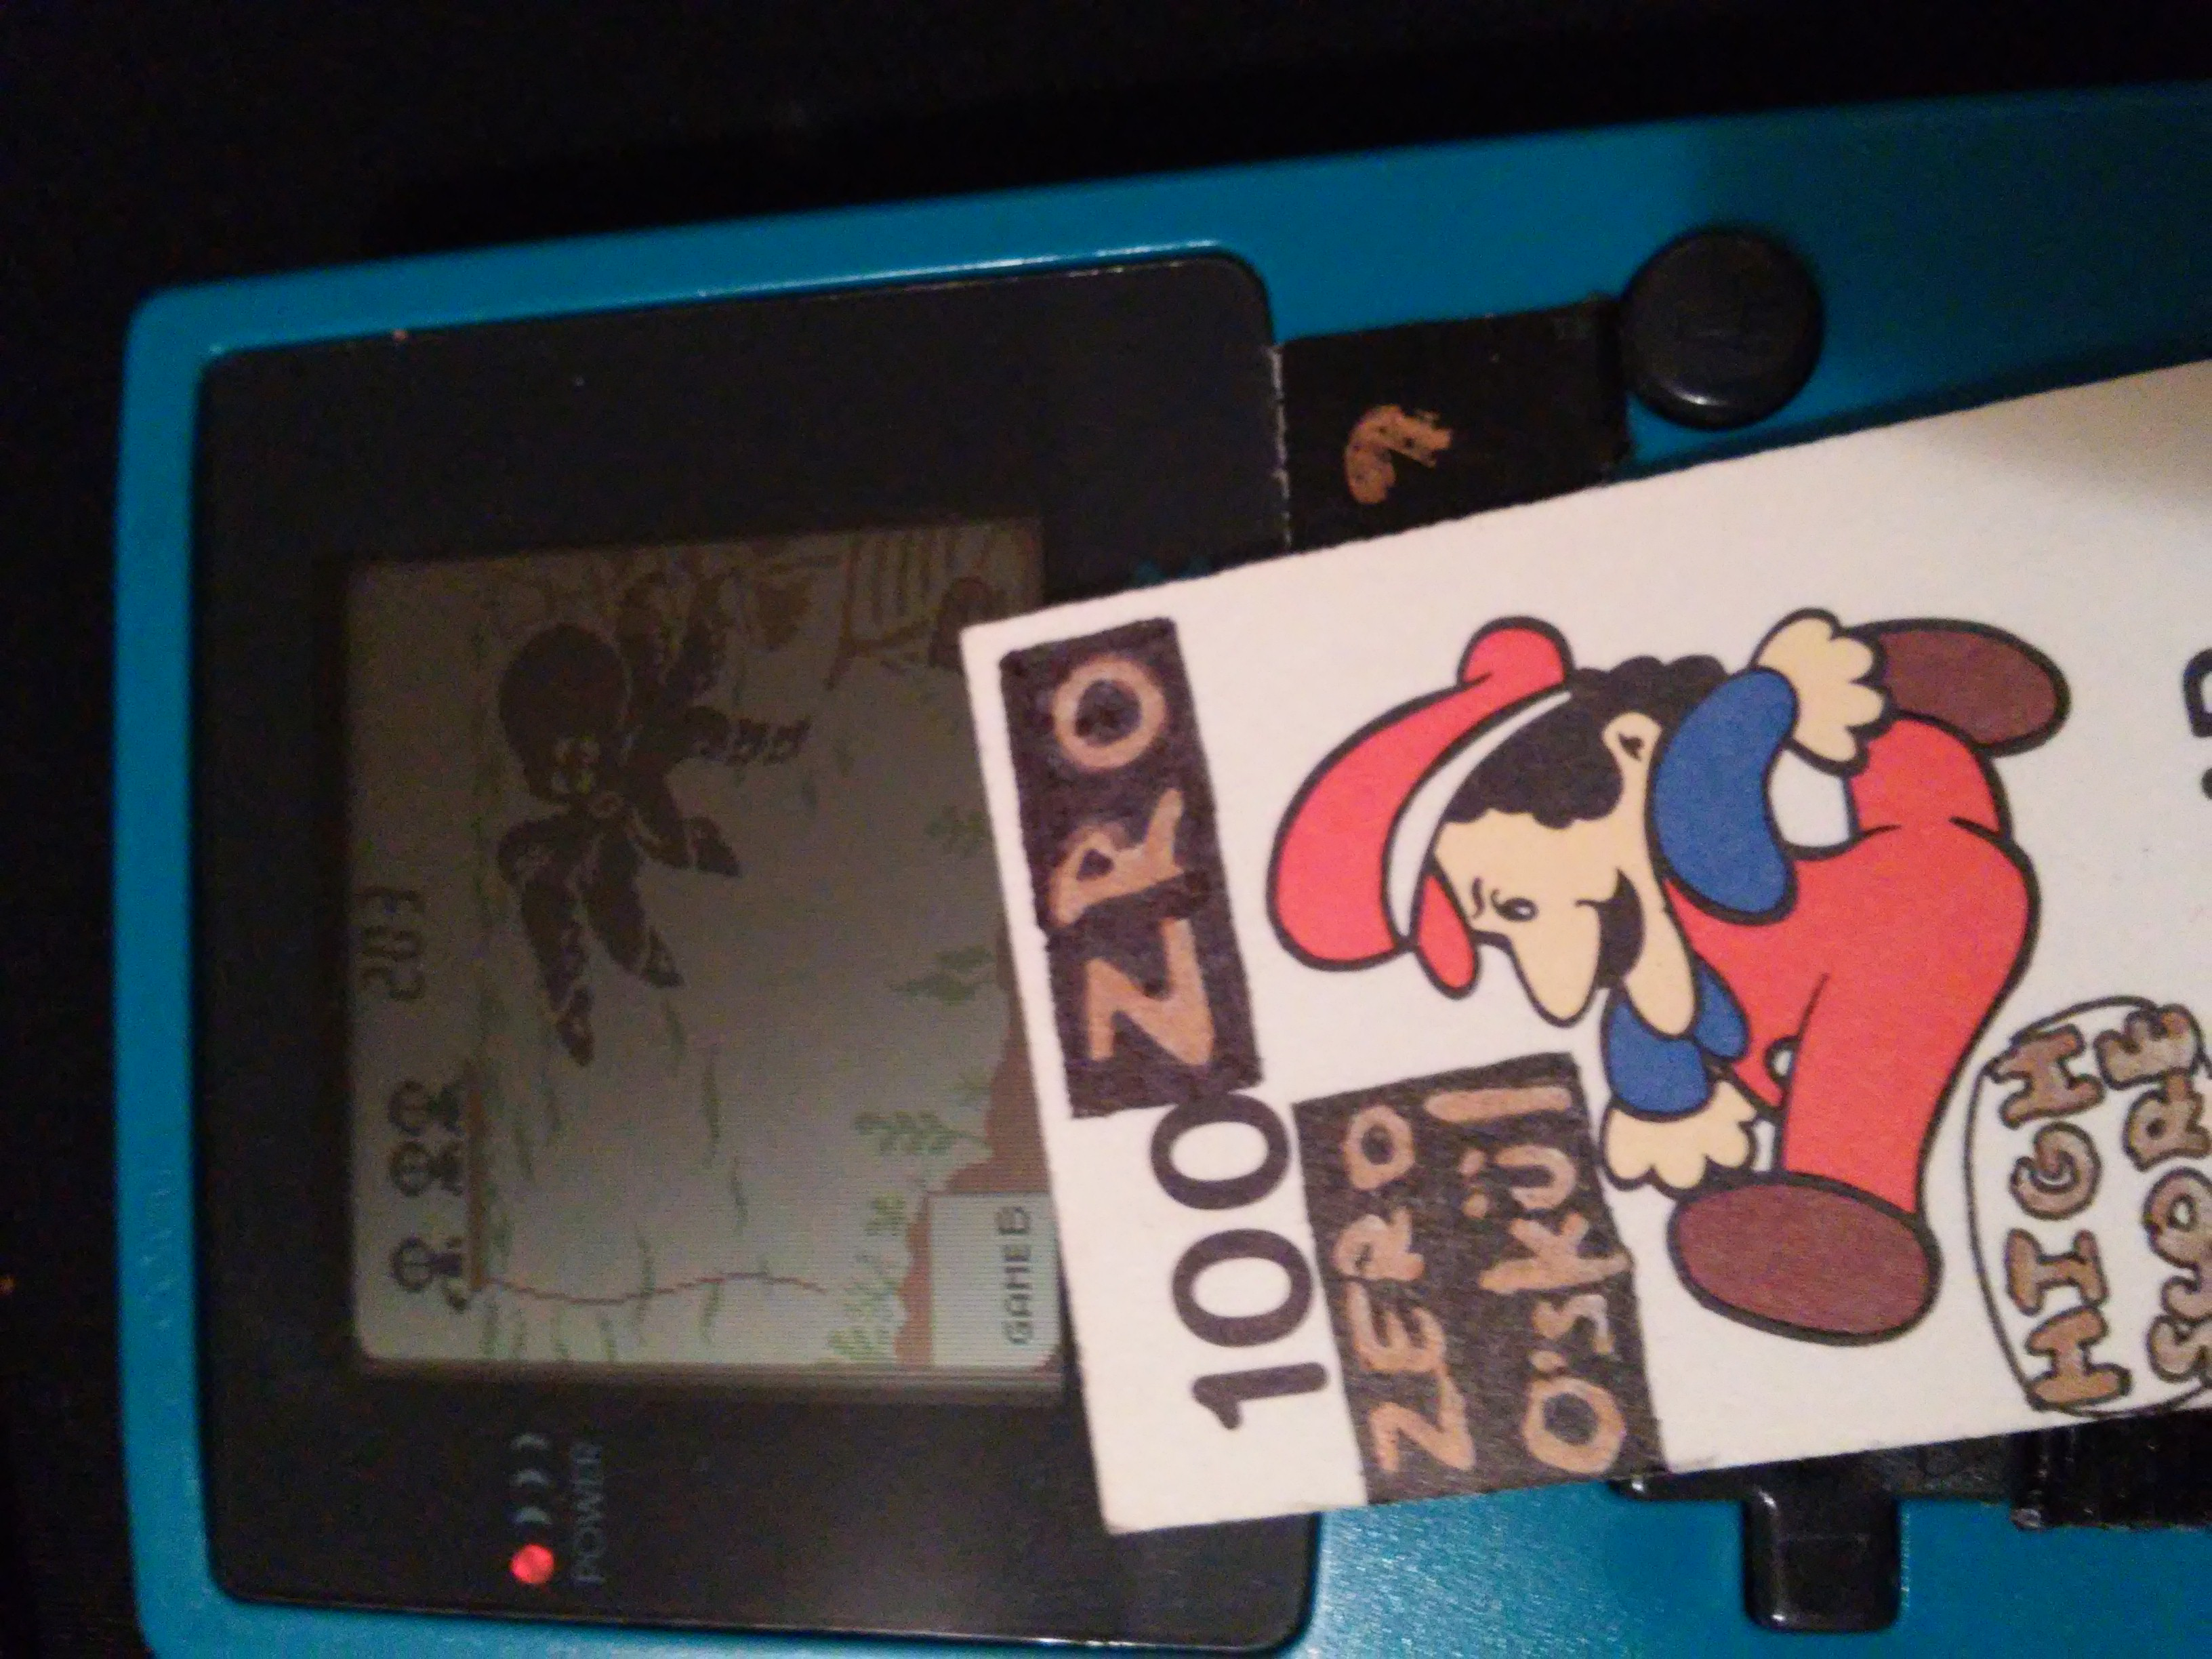 Game & Watch Gallery: Octopus [Classic: Hard] 283 points